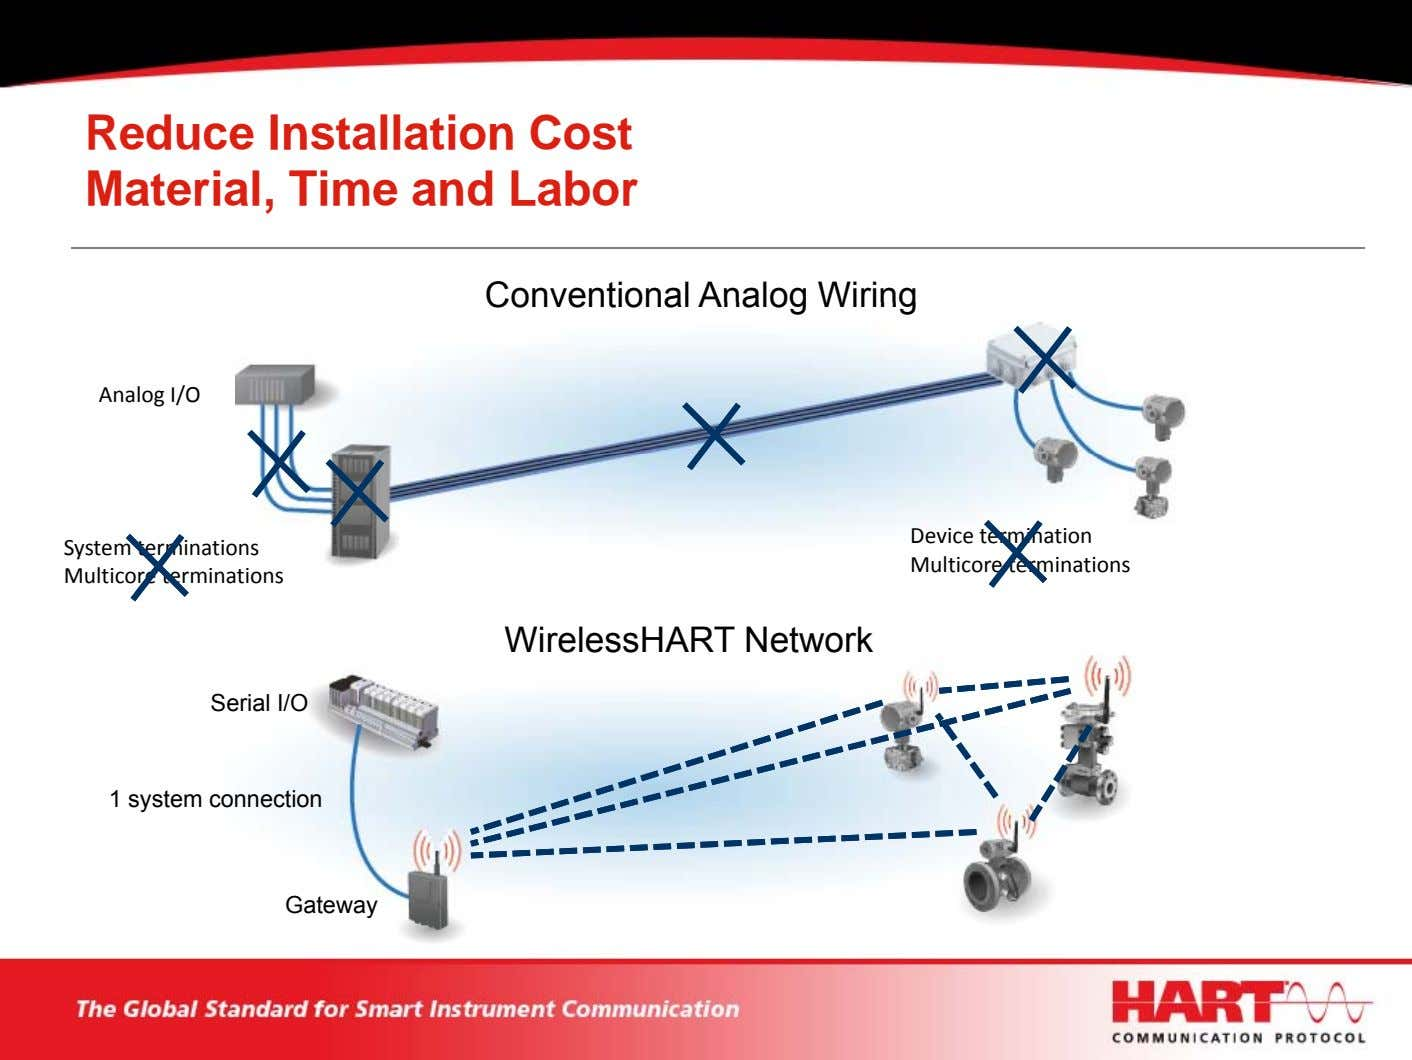 Reduce Installation Cost Material, Time and Labor Conventional Analog Wiring Analog I/O System terminations Multicore